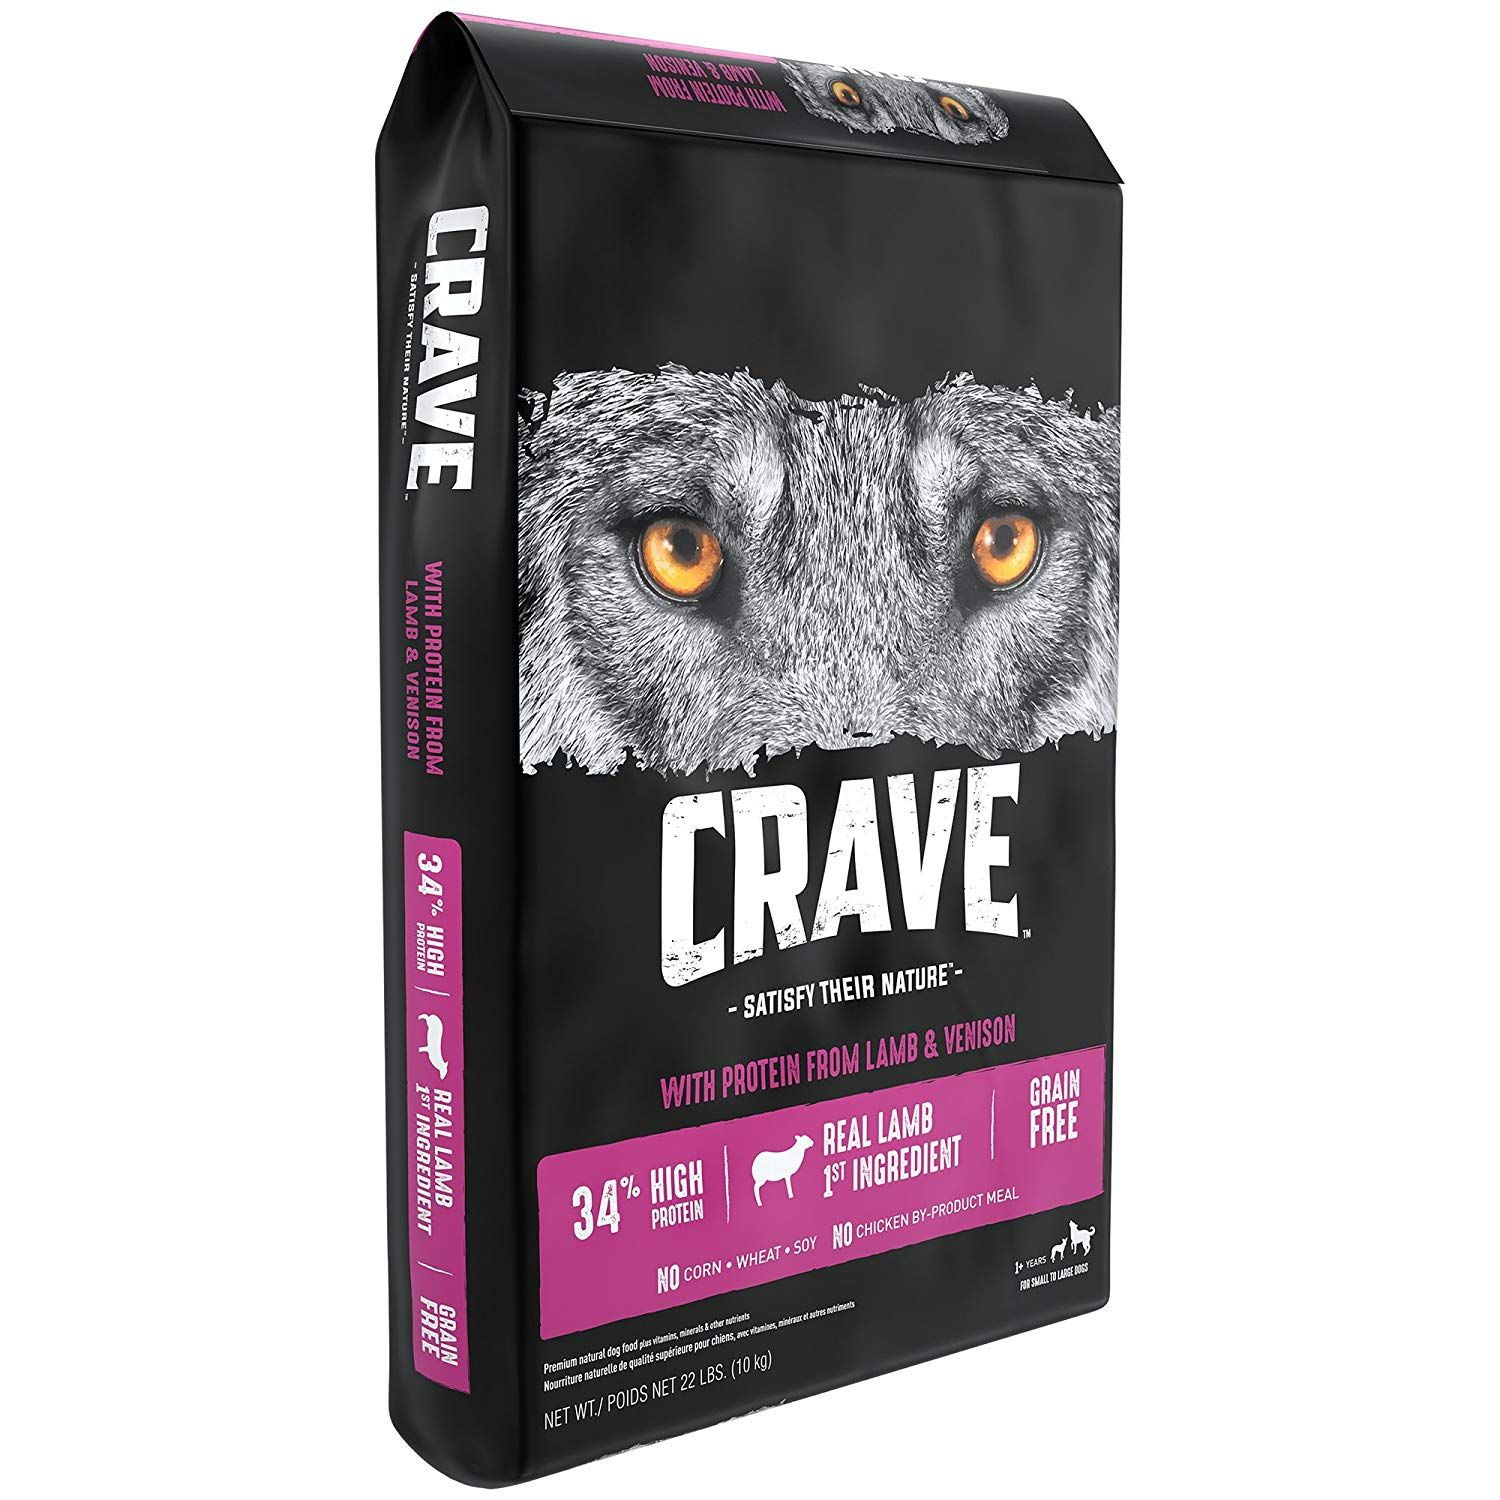 CRAVE Grain Free High Protein Dry Dog Food ** Very nice of